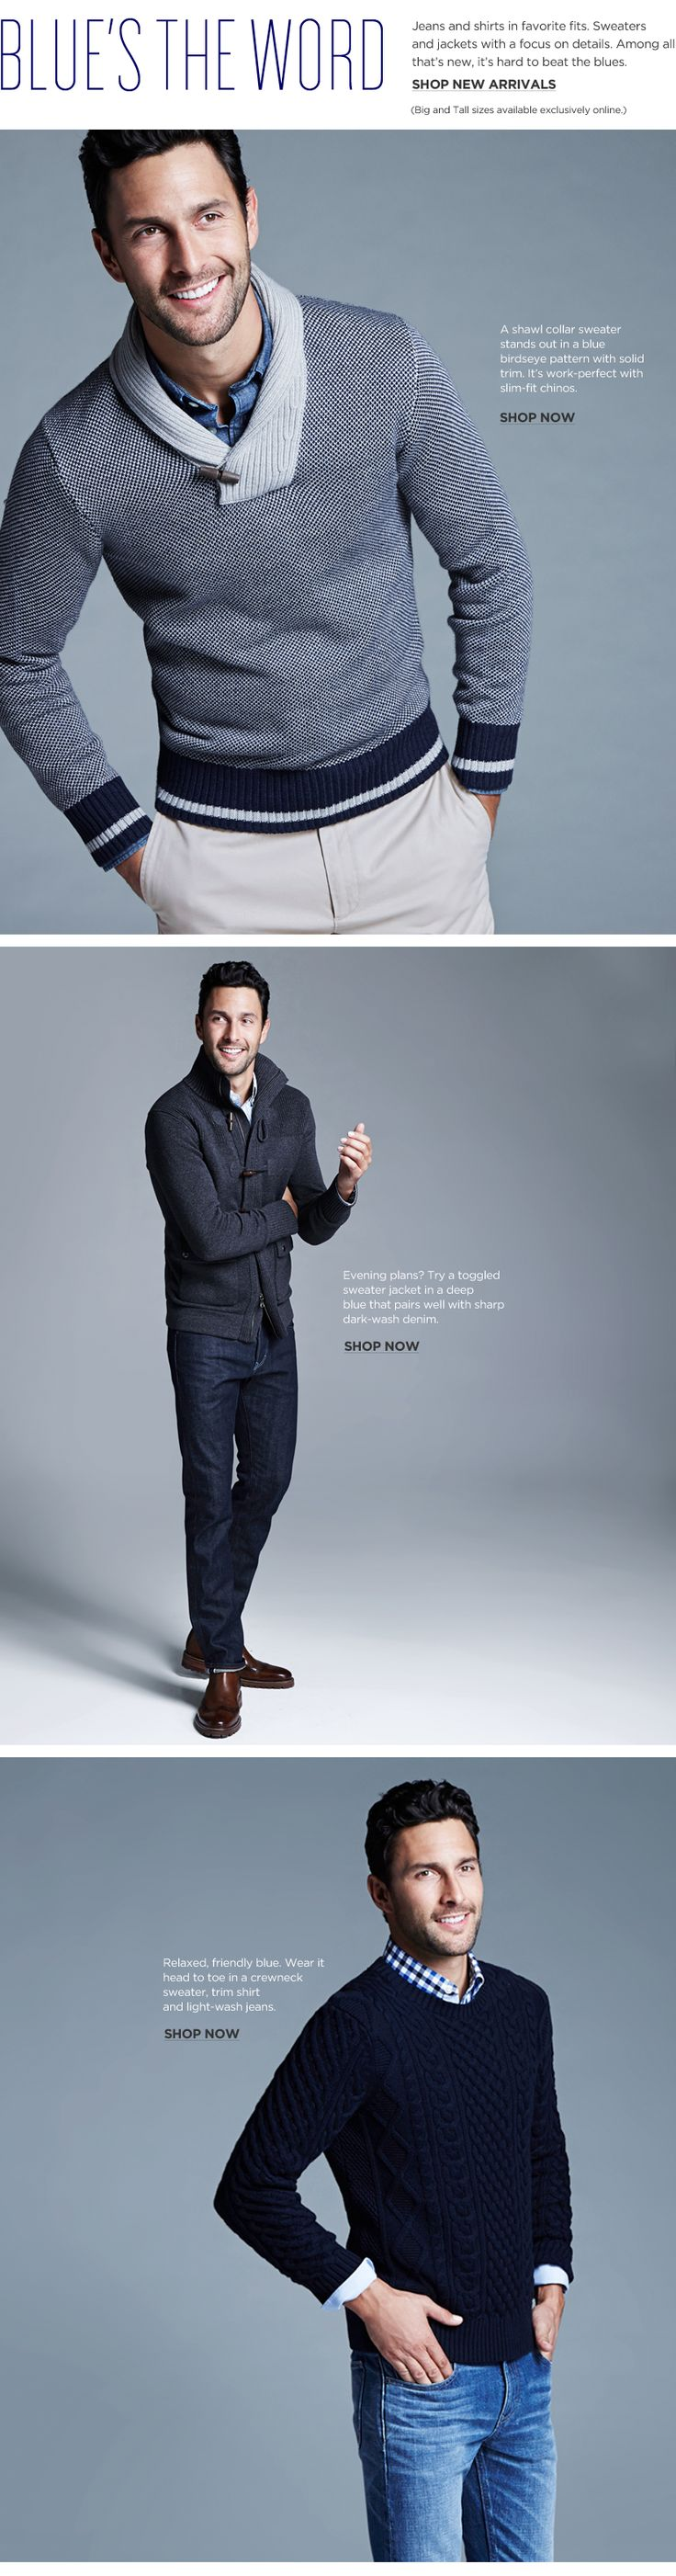 Big and Tall Clothing: shirts, pants, polos, jeans, suits, blazers, outerwear in big and tall sizes   Banana Republic